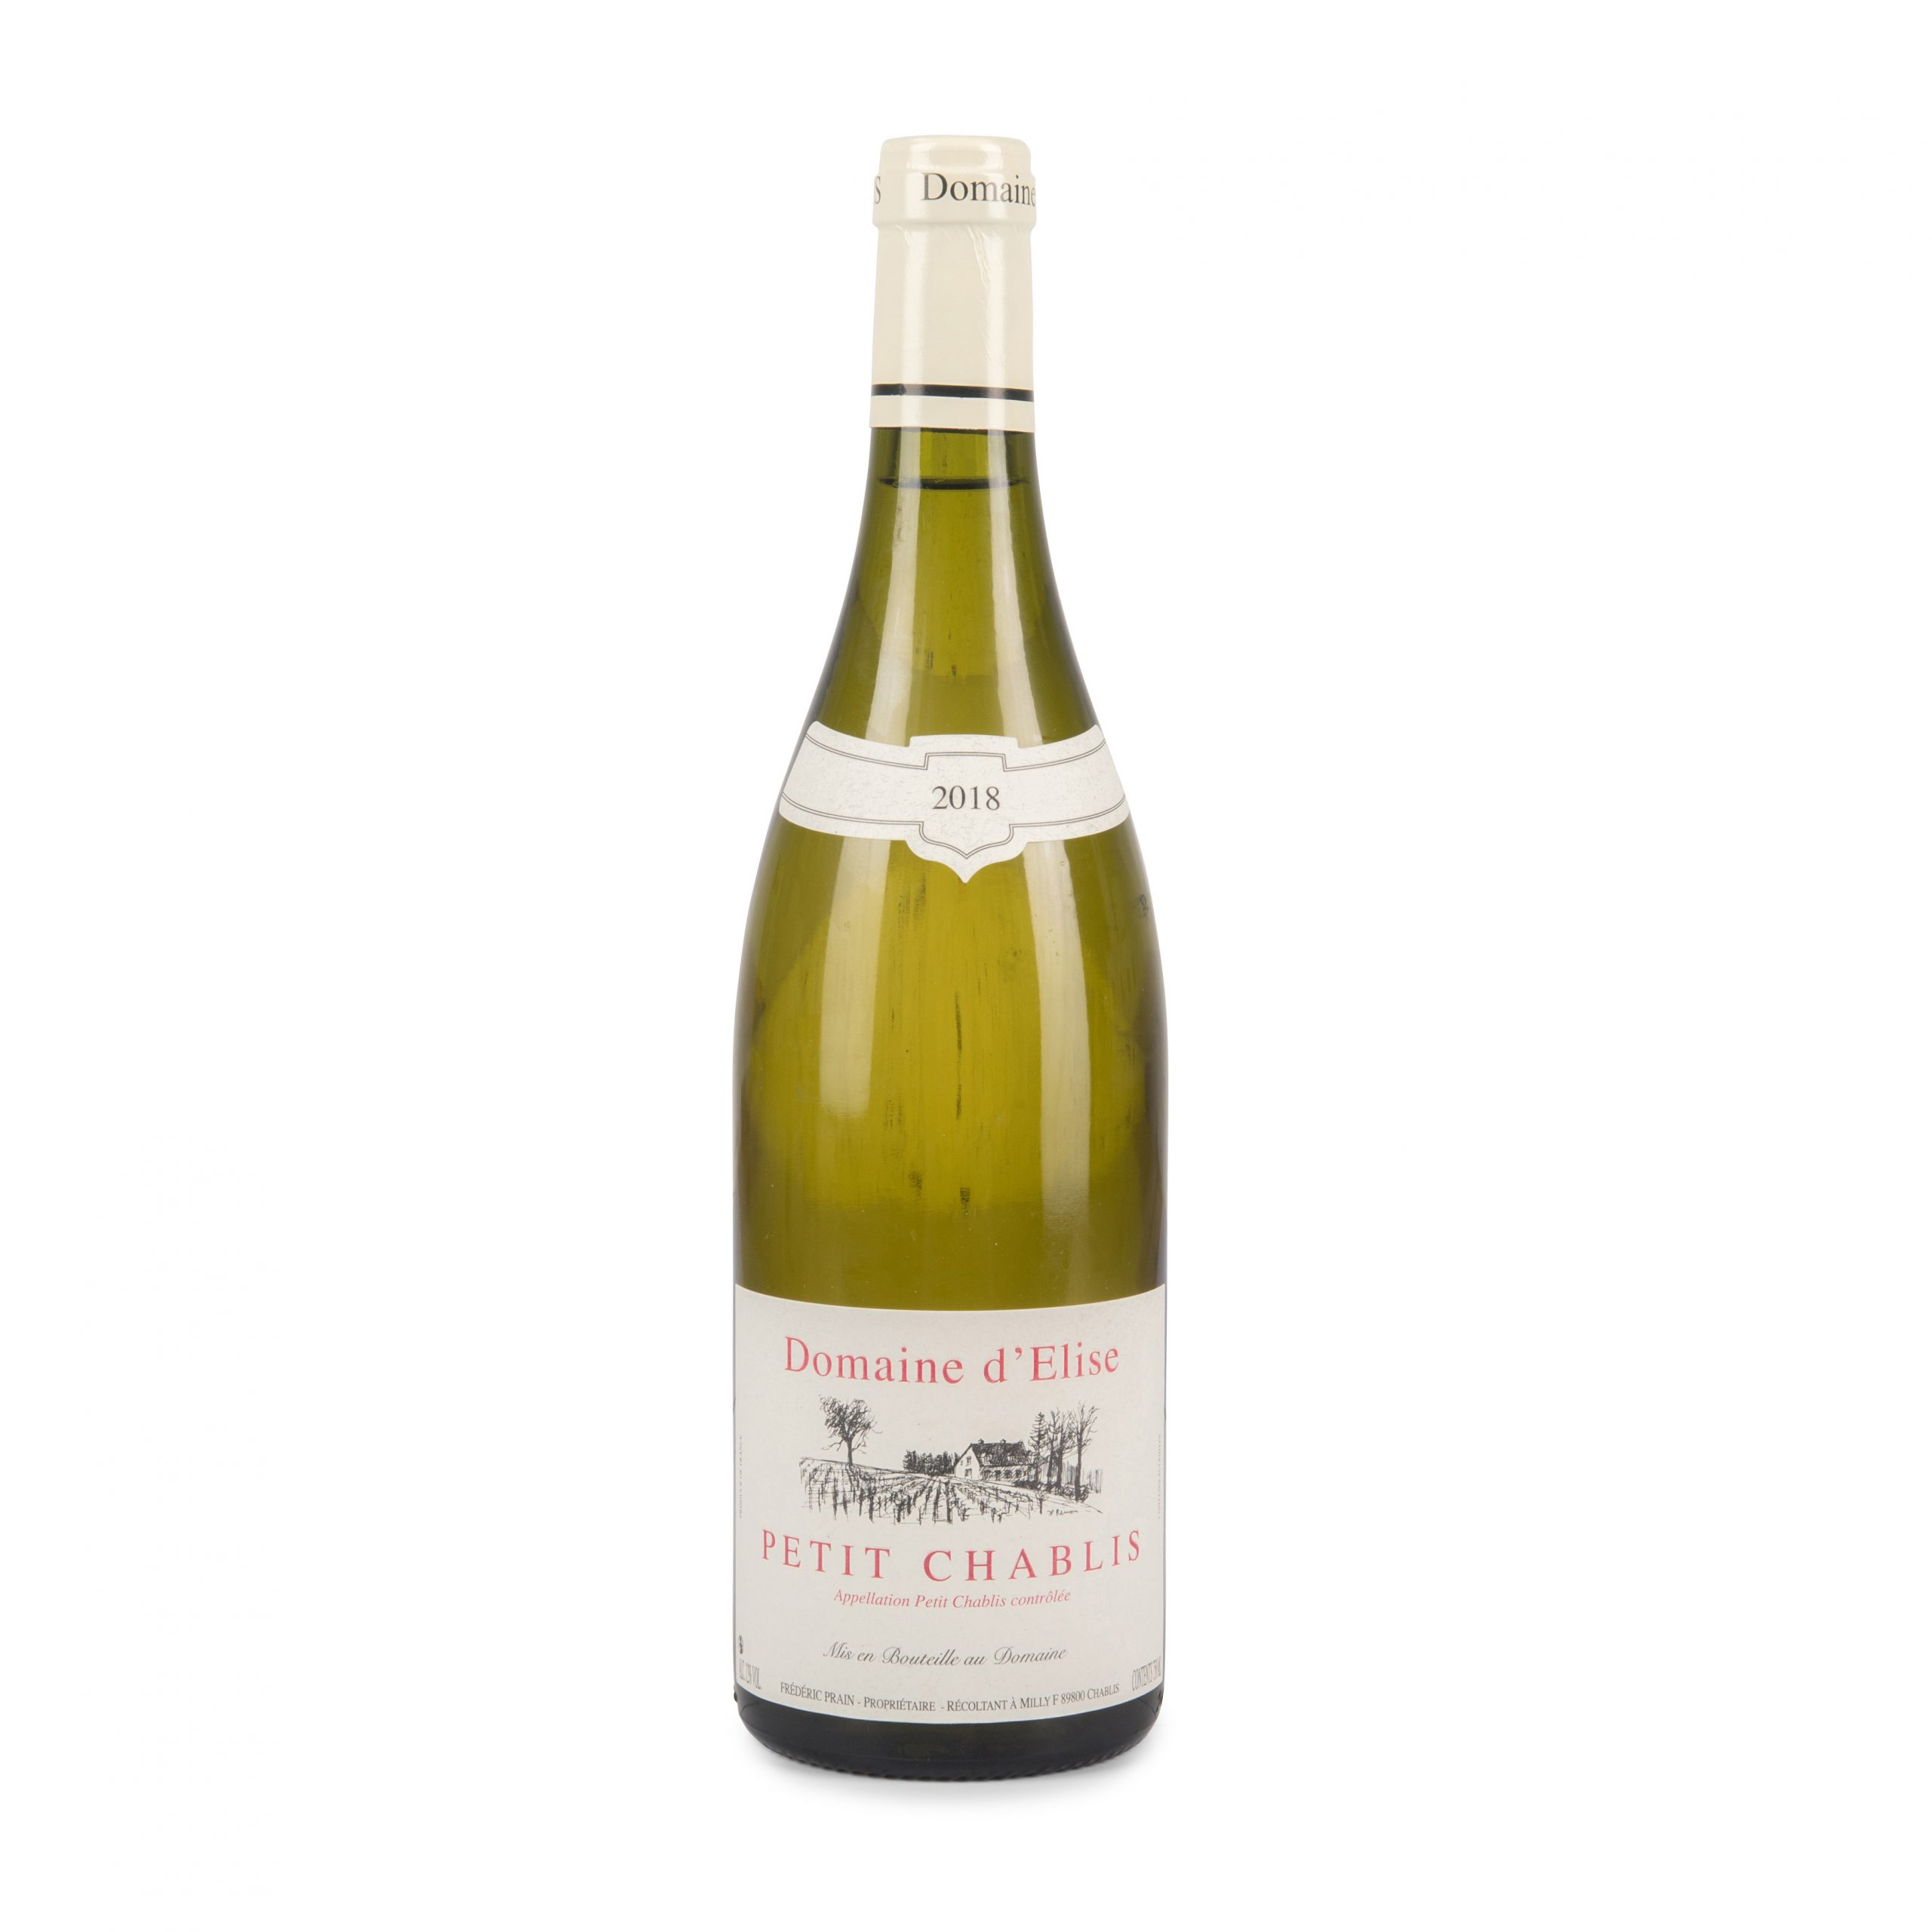 A bottle, Petit Chablis